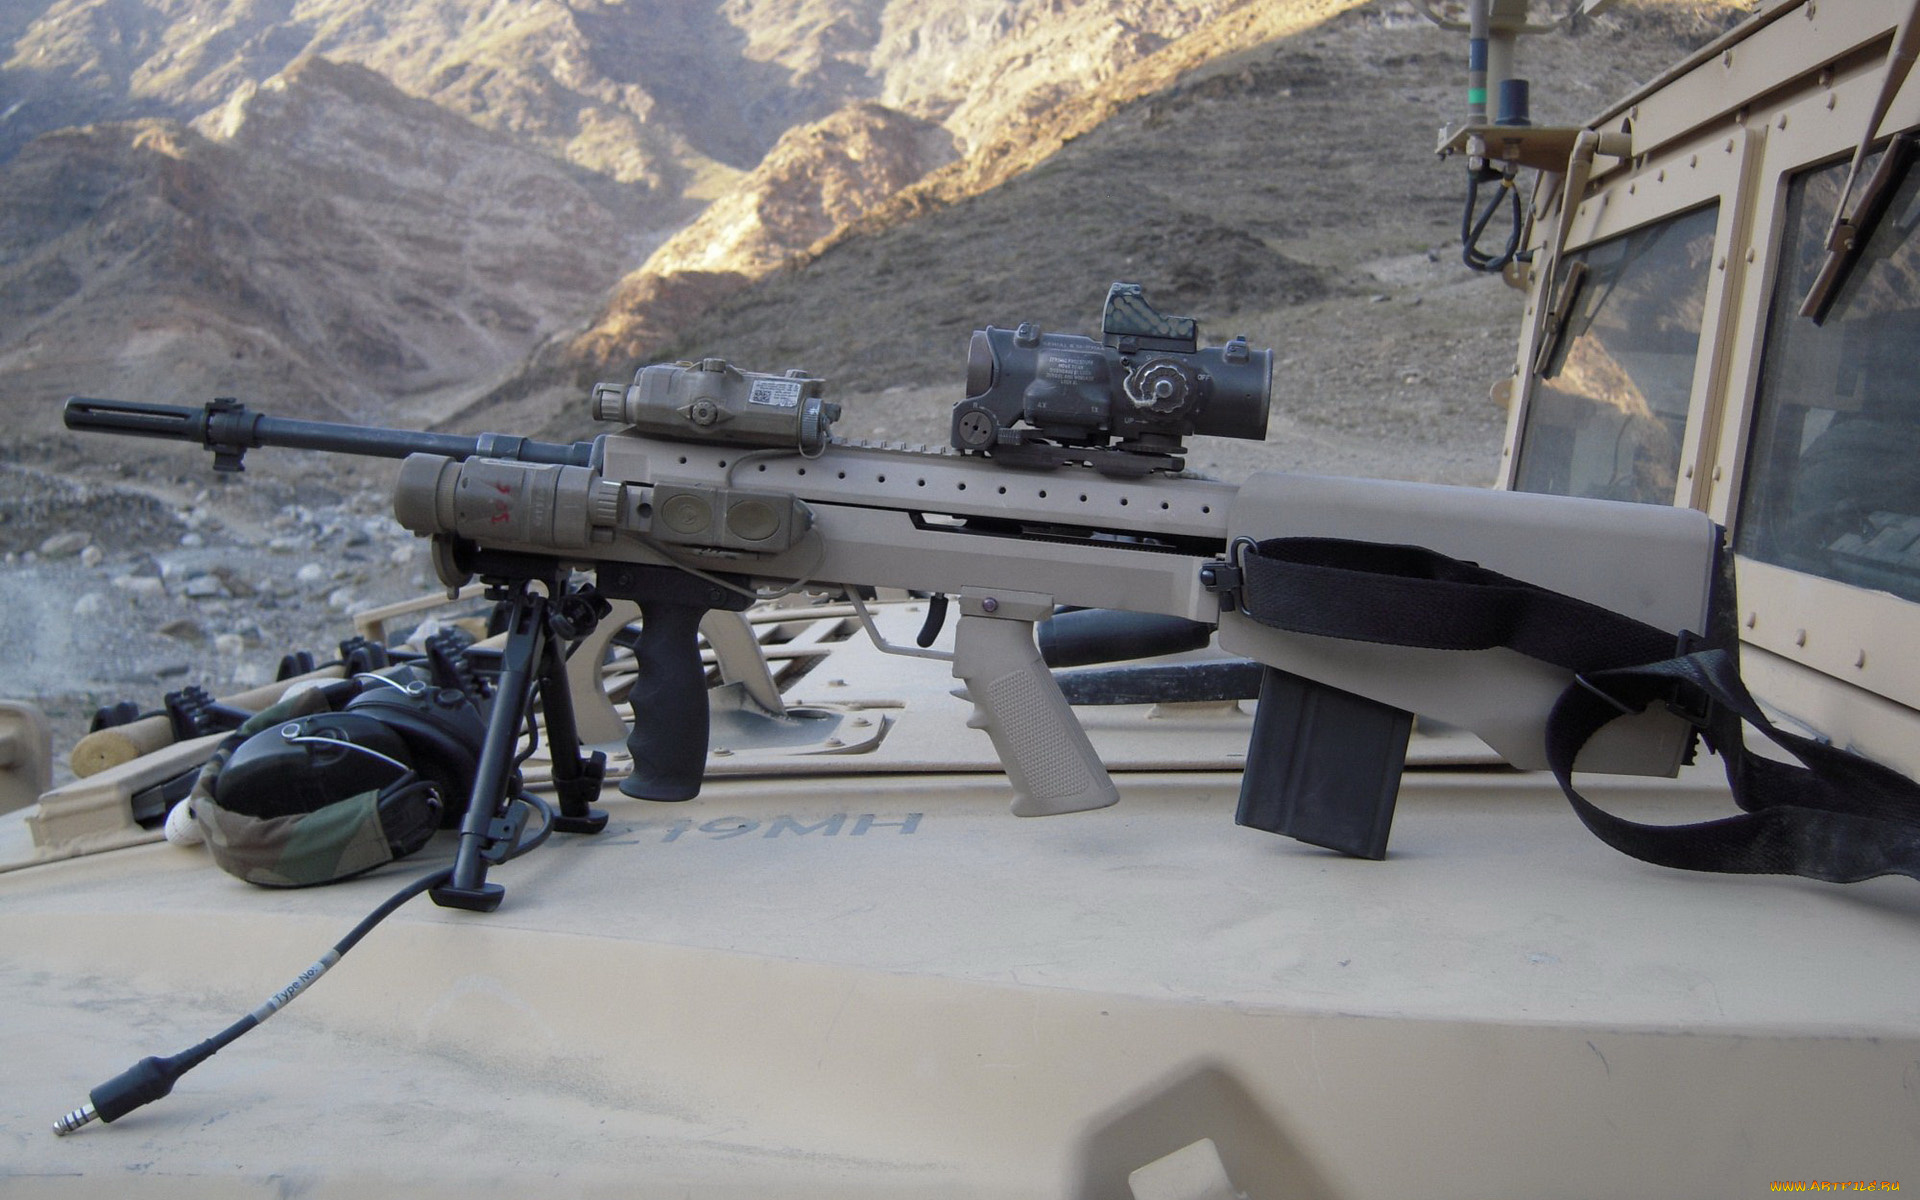 armys long serving sniper rifle - HD1920×1080